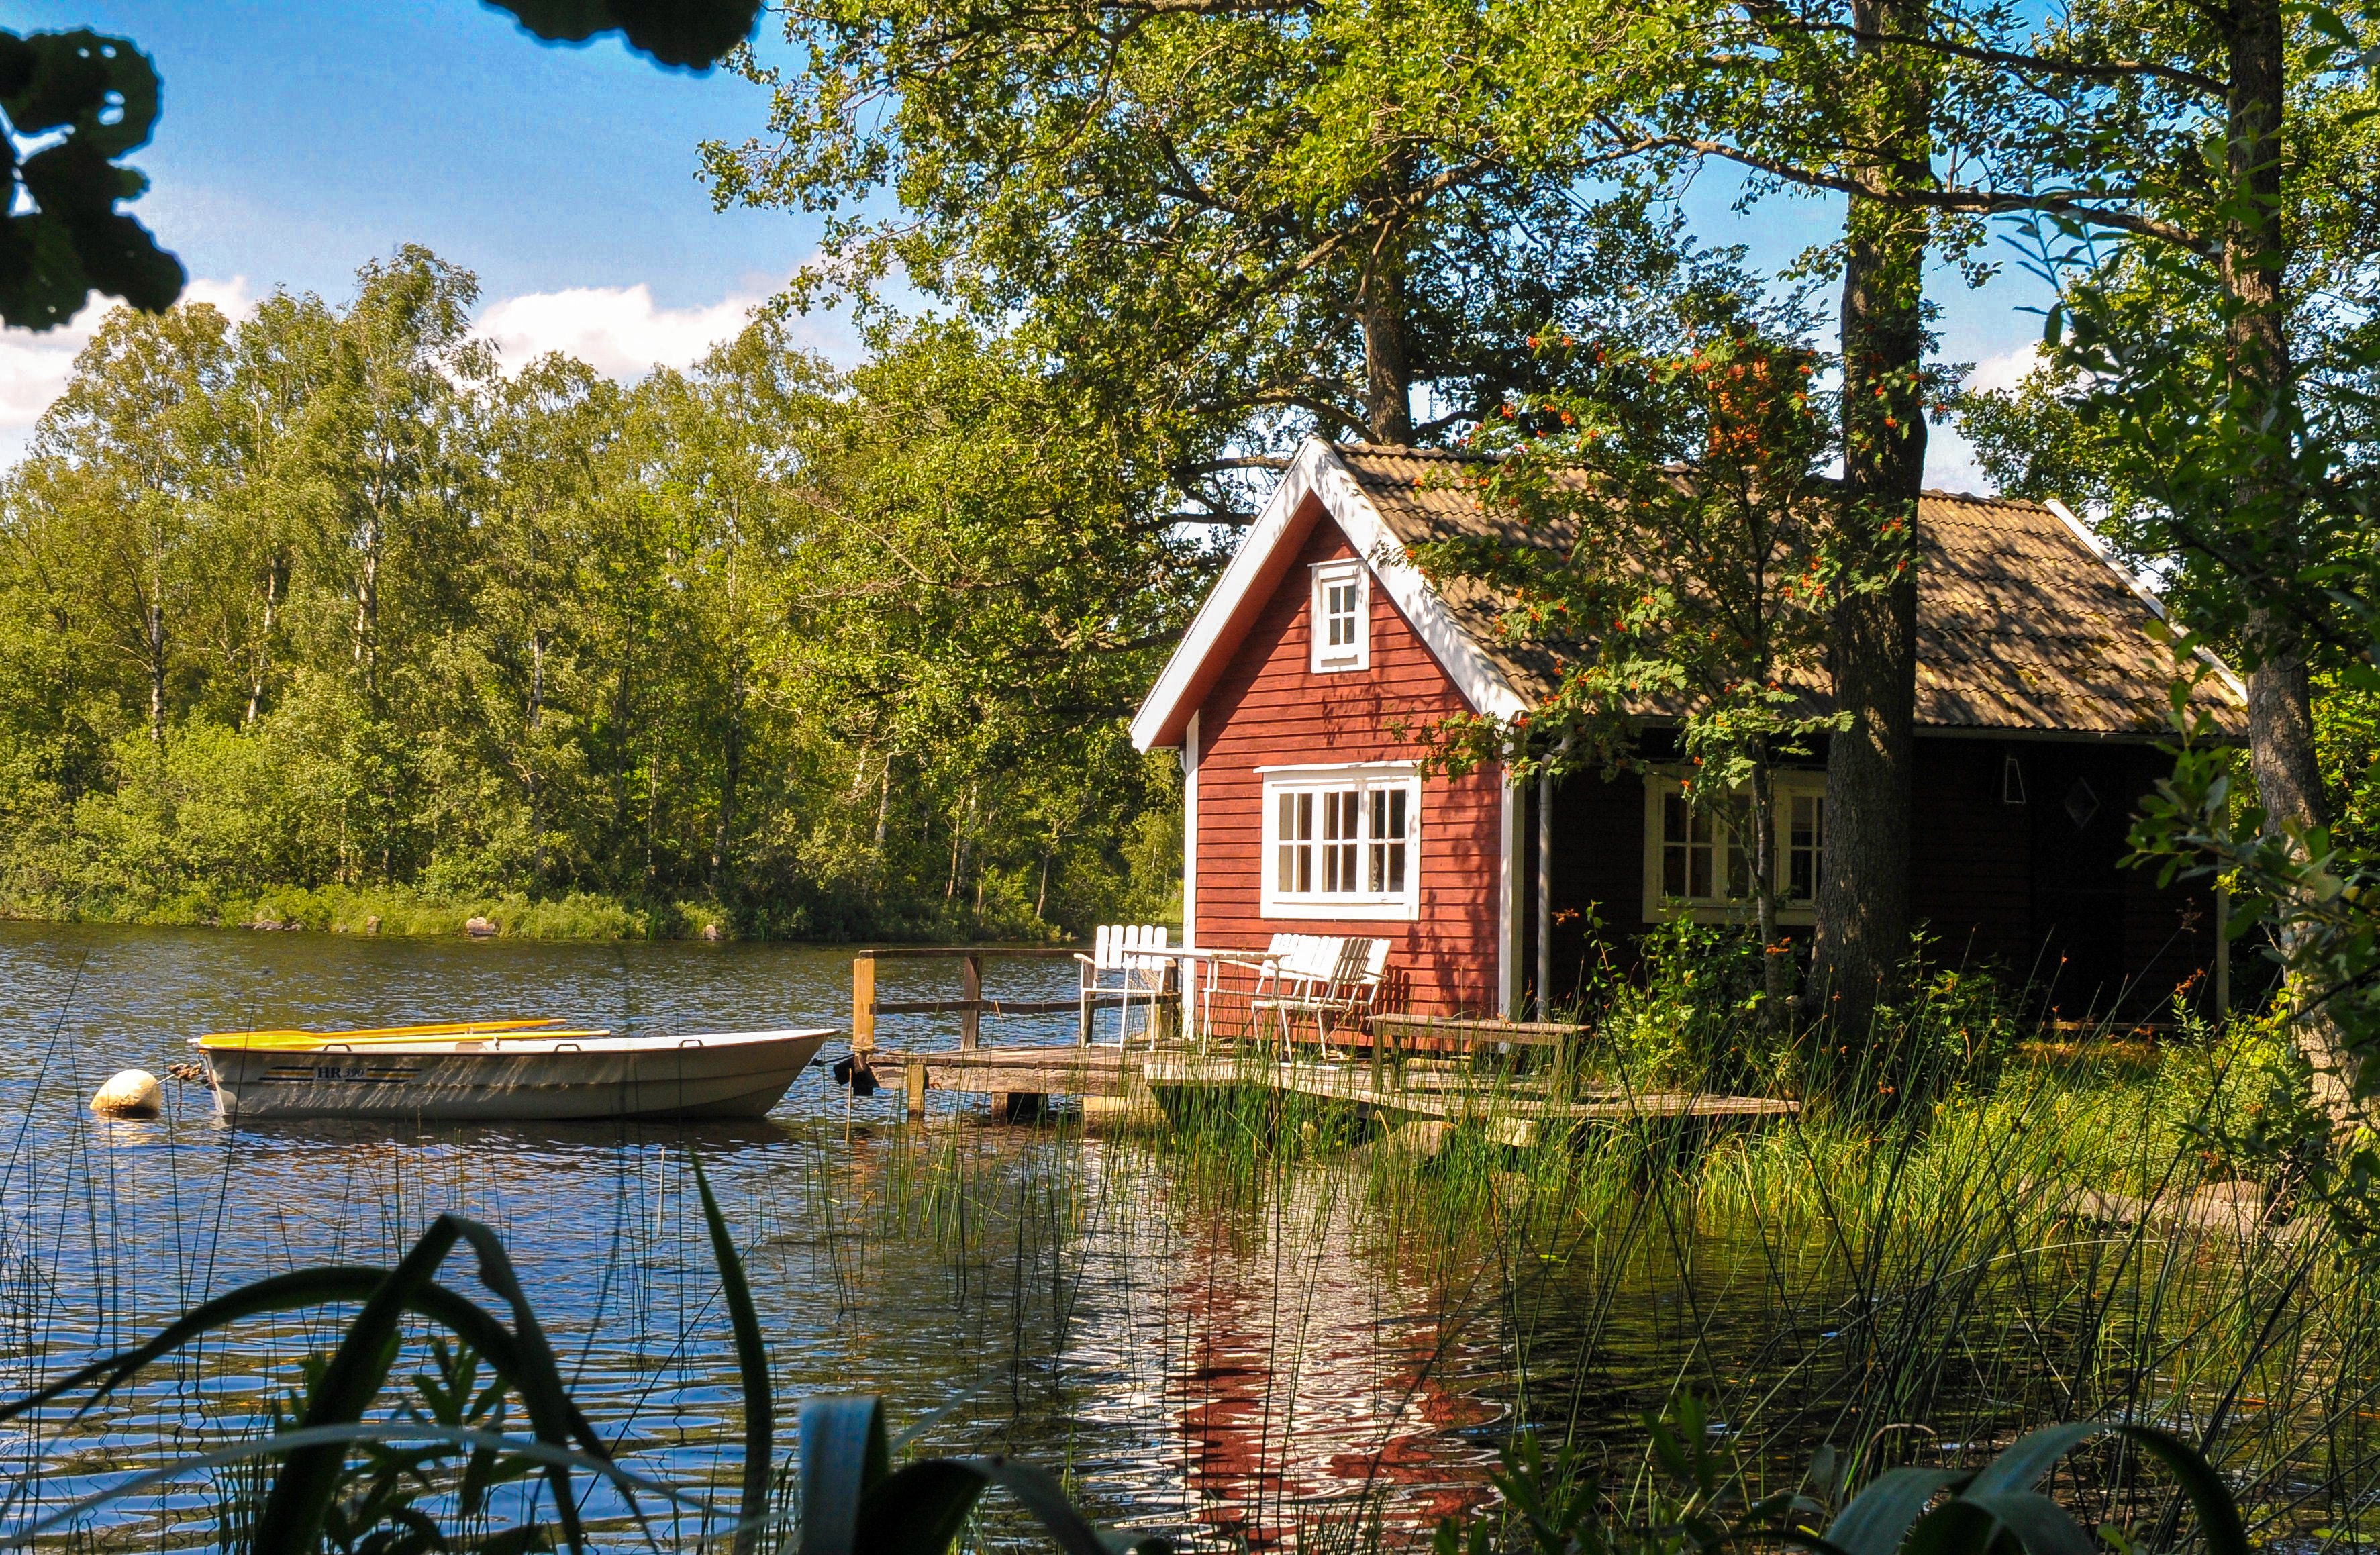 Rent Swedish lakeside cabins & cottages   Farmstay Sweden